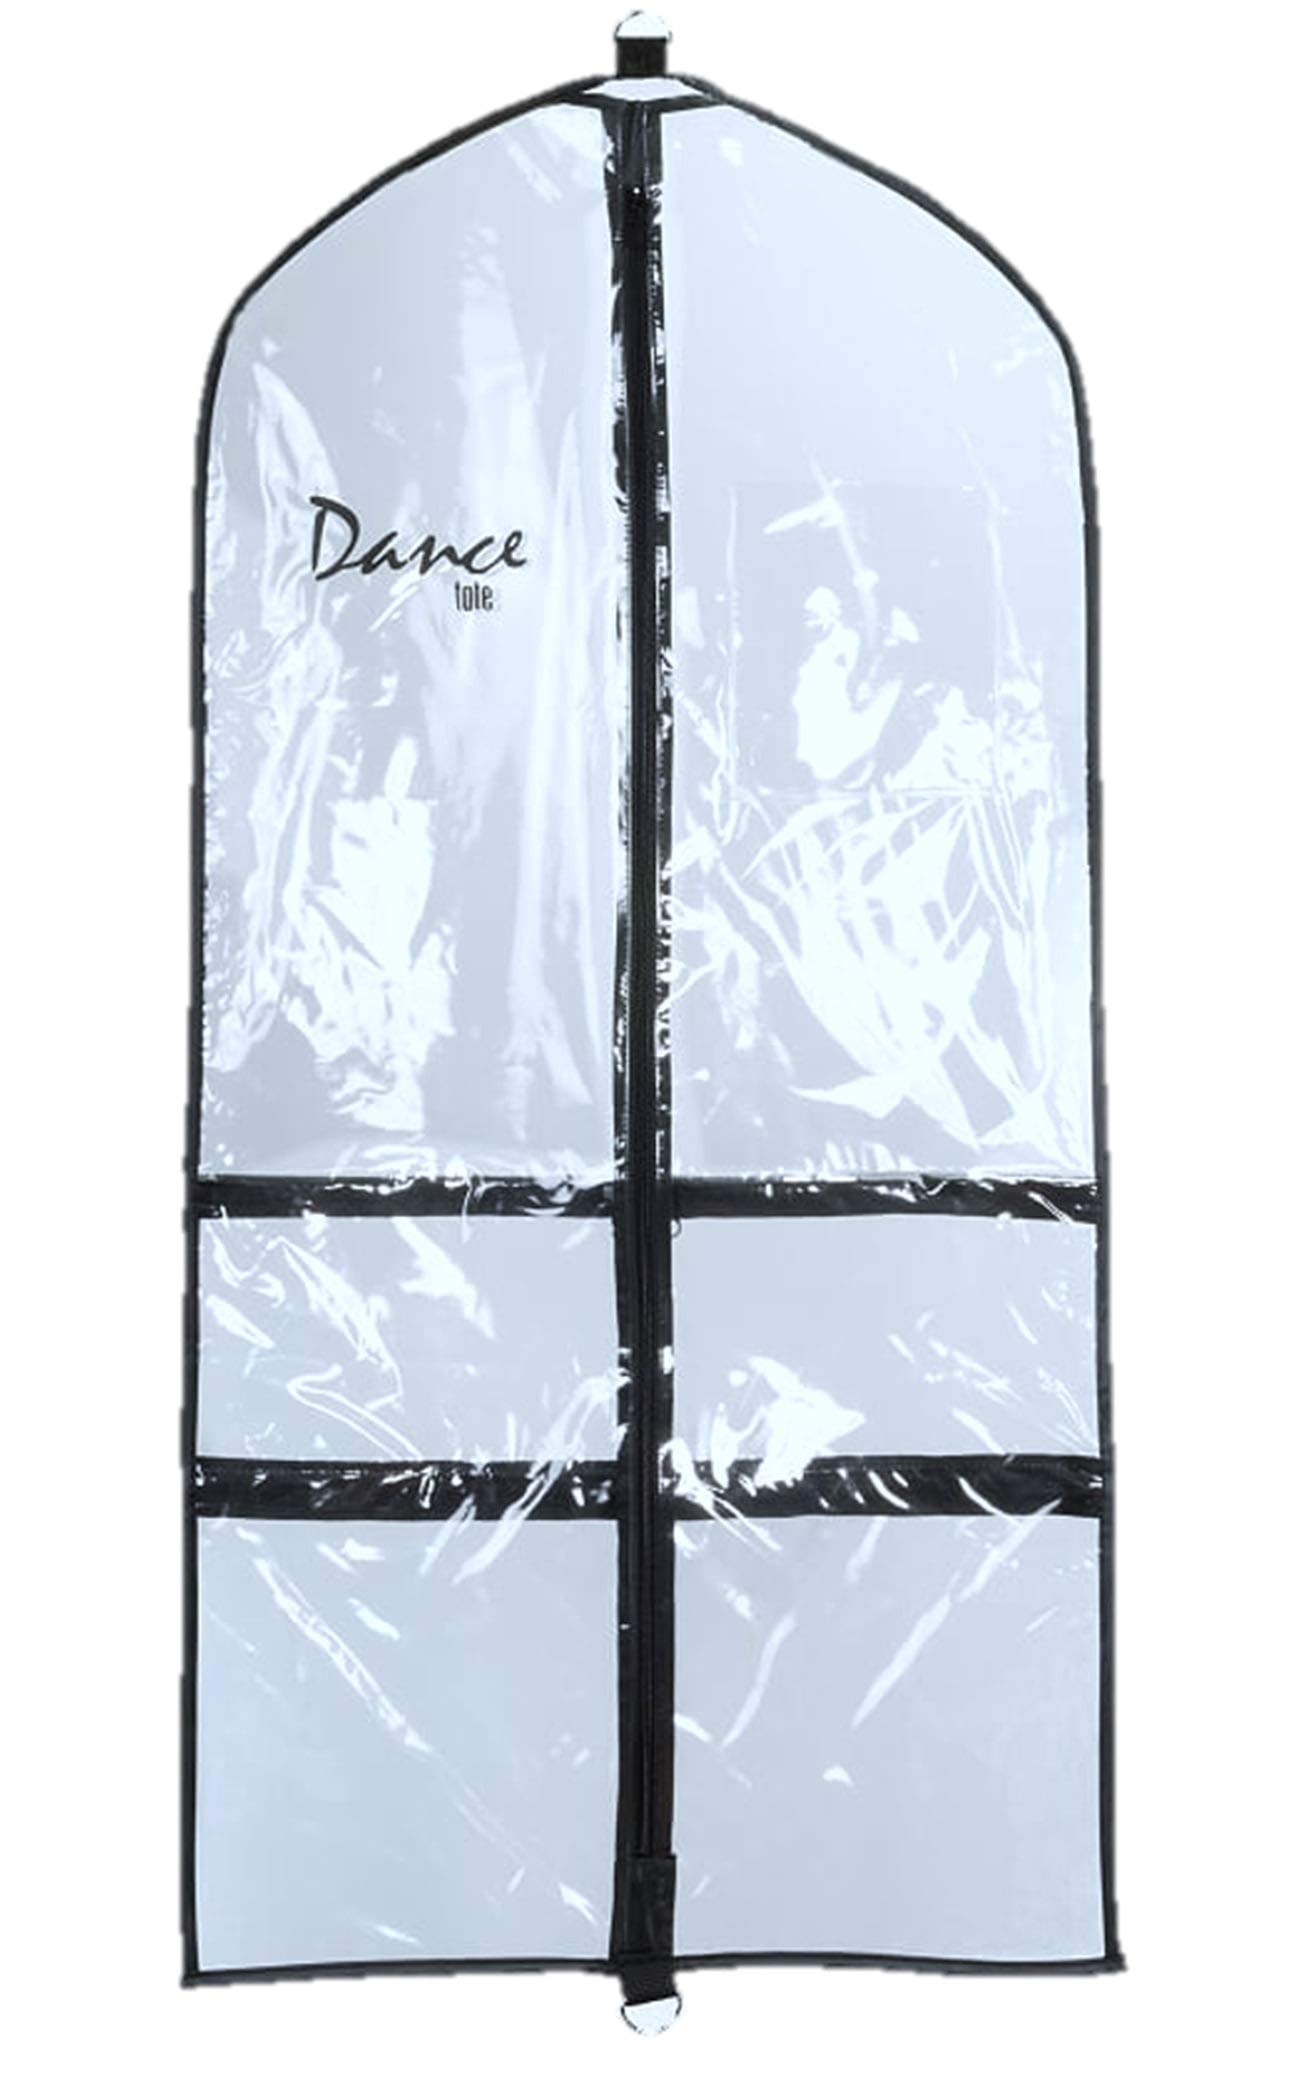 PACO Dance Competition and Costume Clear Garment Bag With Four Zippered Pockets - (Black Trim)